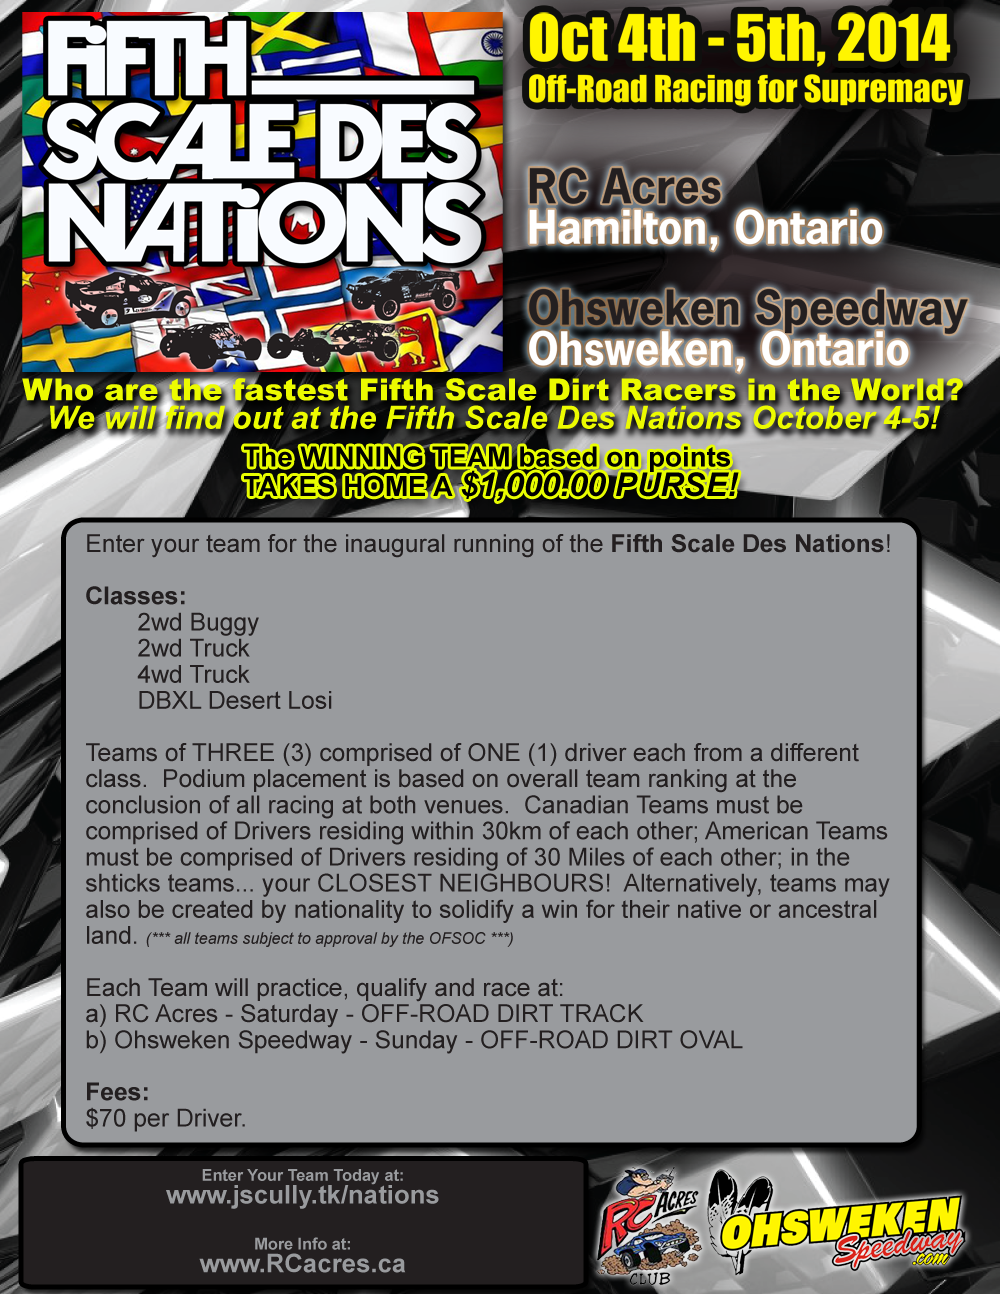 fifthscaledesnationsposter-v1